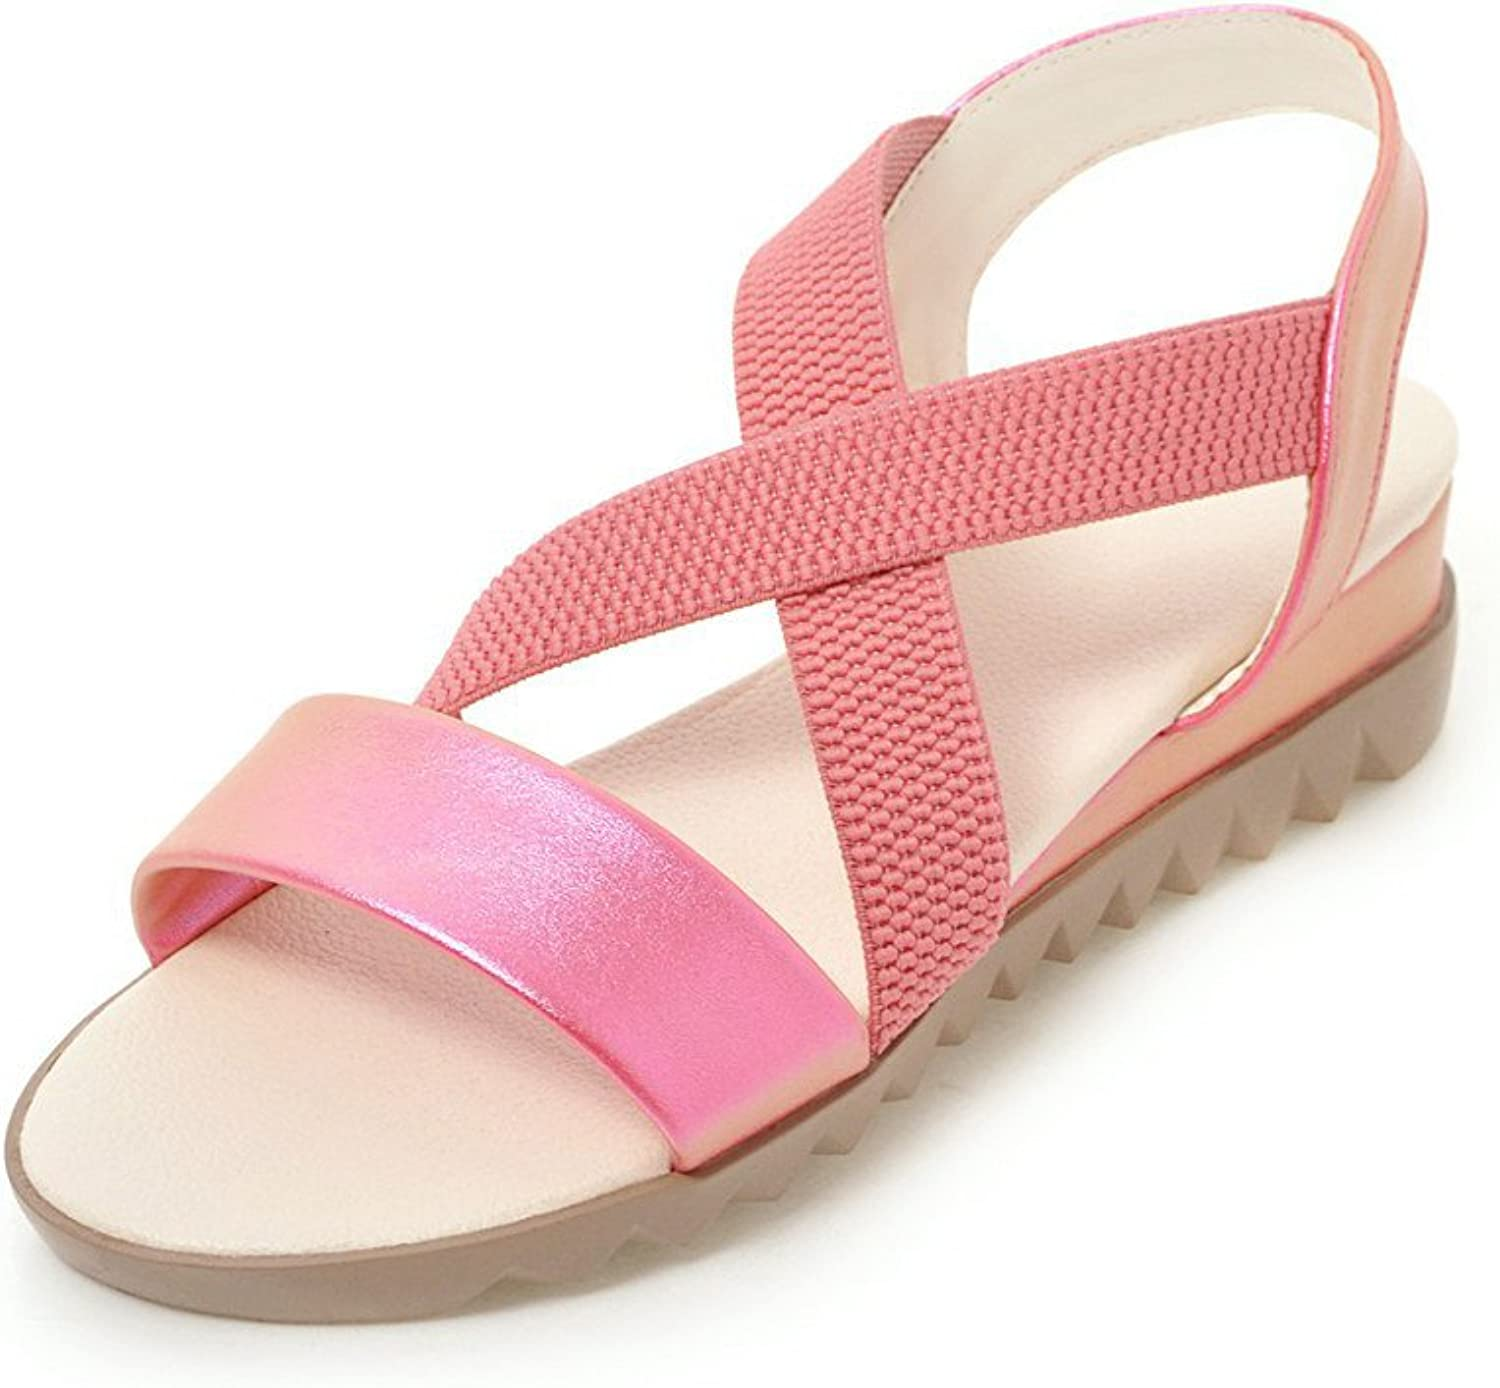 Women's shoes PU Spring Summer shoes Sandals Walking shoes Low Heel Wedge Heel Round Toe Appliques for Casual Outdoor